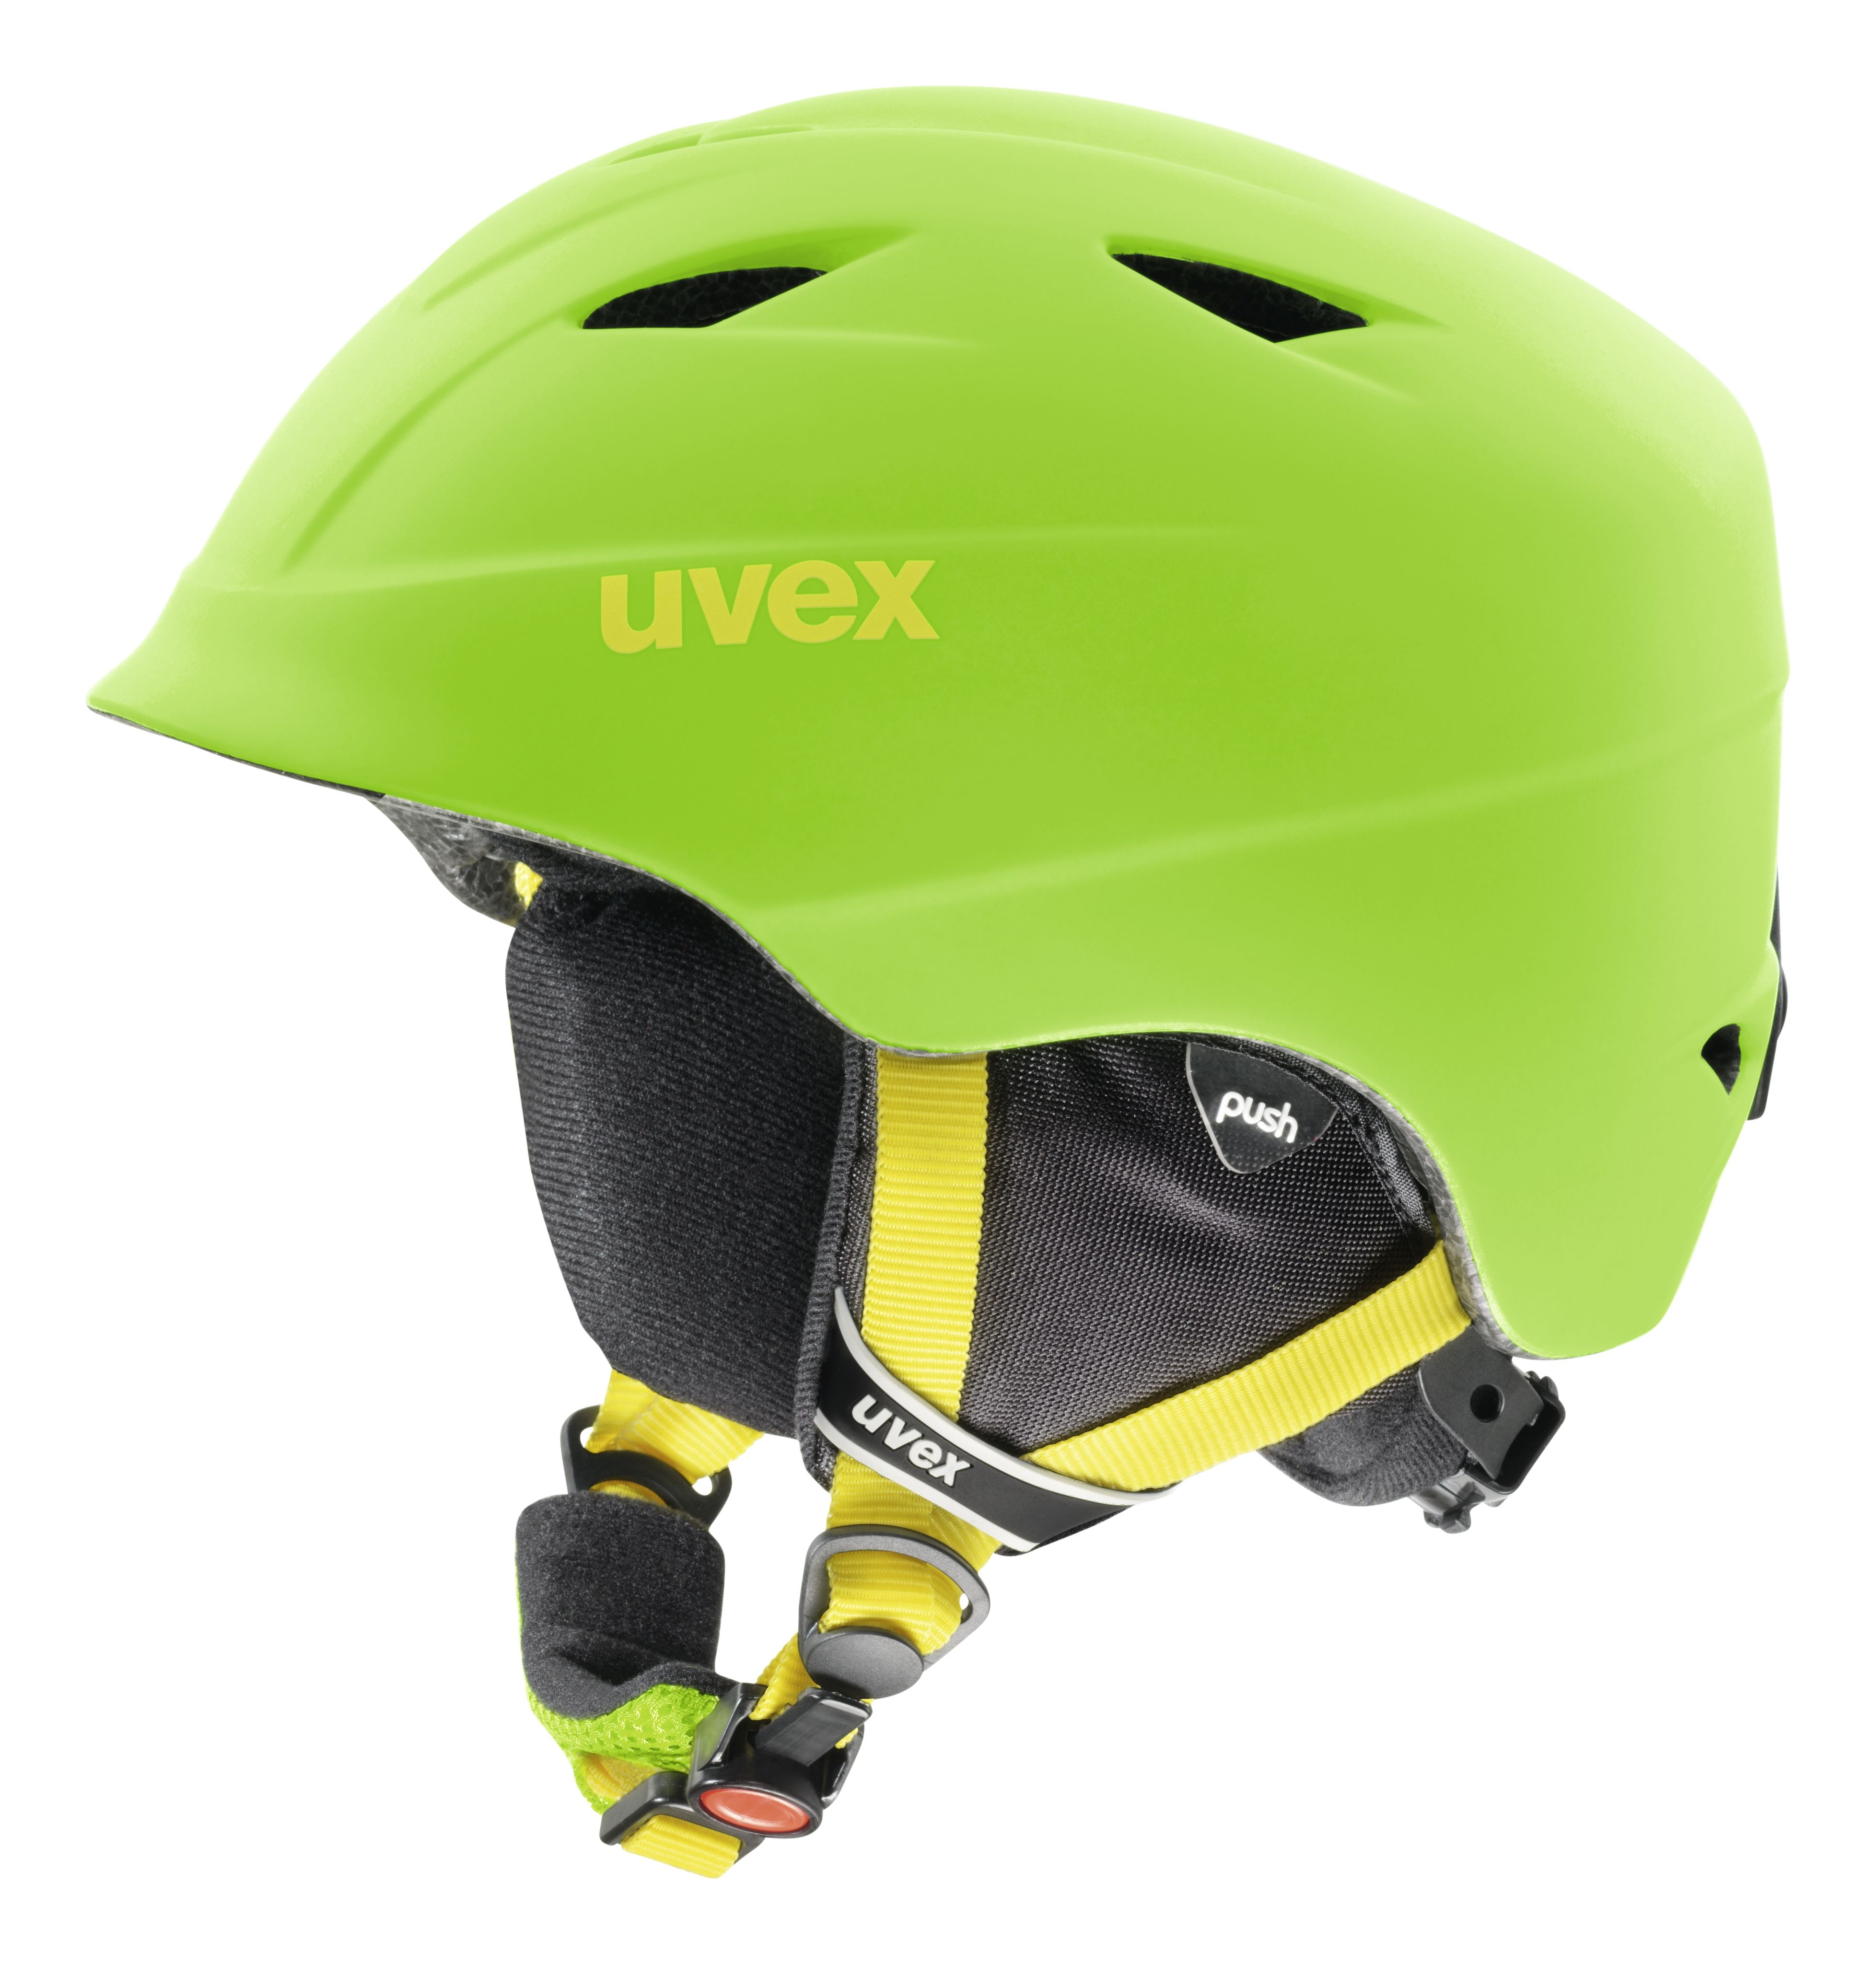 17d423daa0 uvex airwing 2 pro    Head protection for the young guns. The lightweight uvex  airwing 2 pro kids ski helmet provides high end protection from the very ...